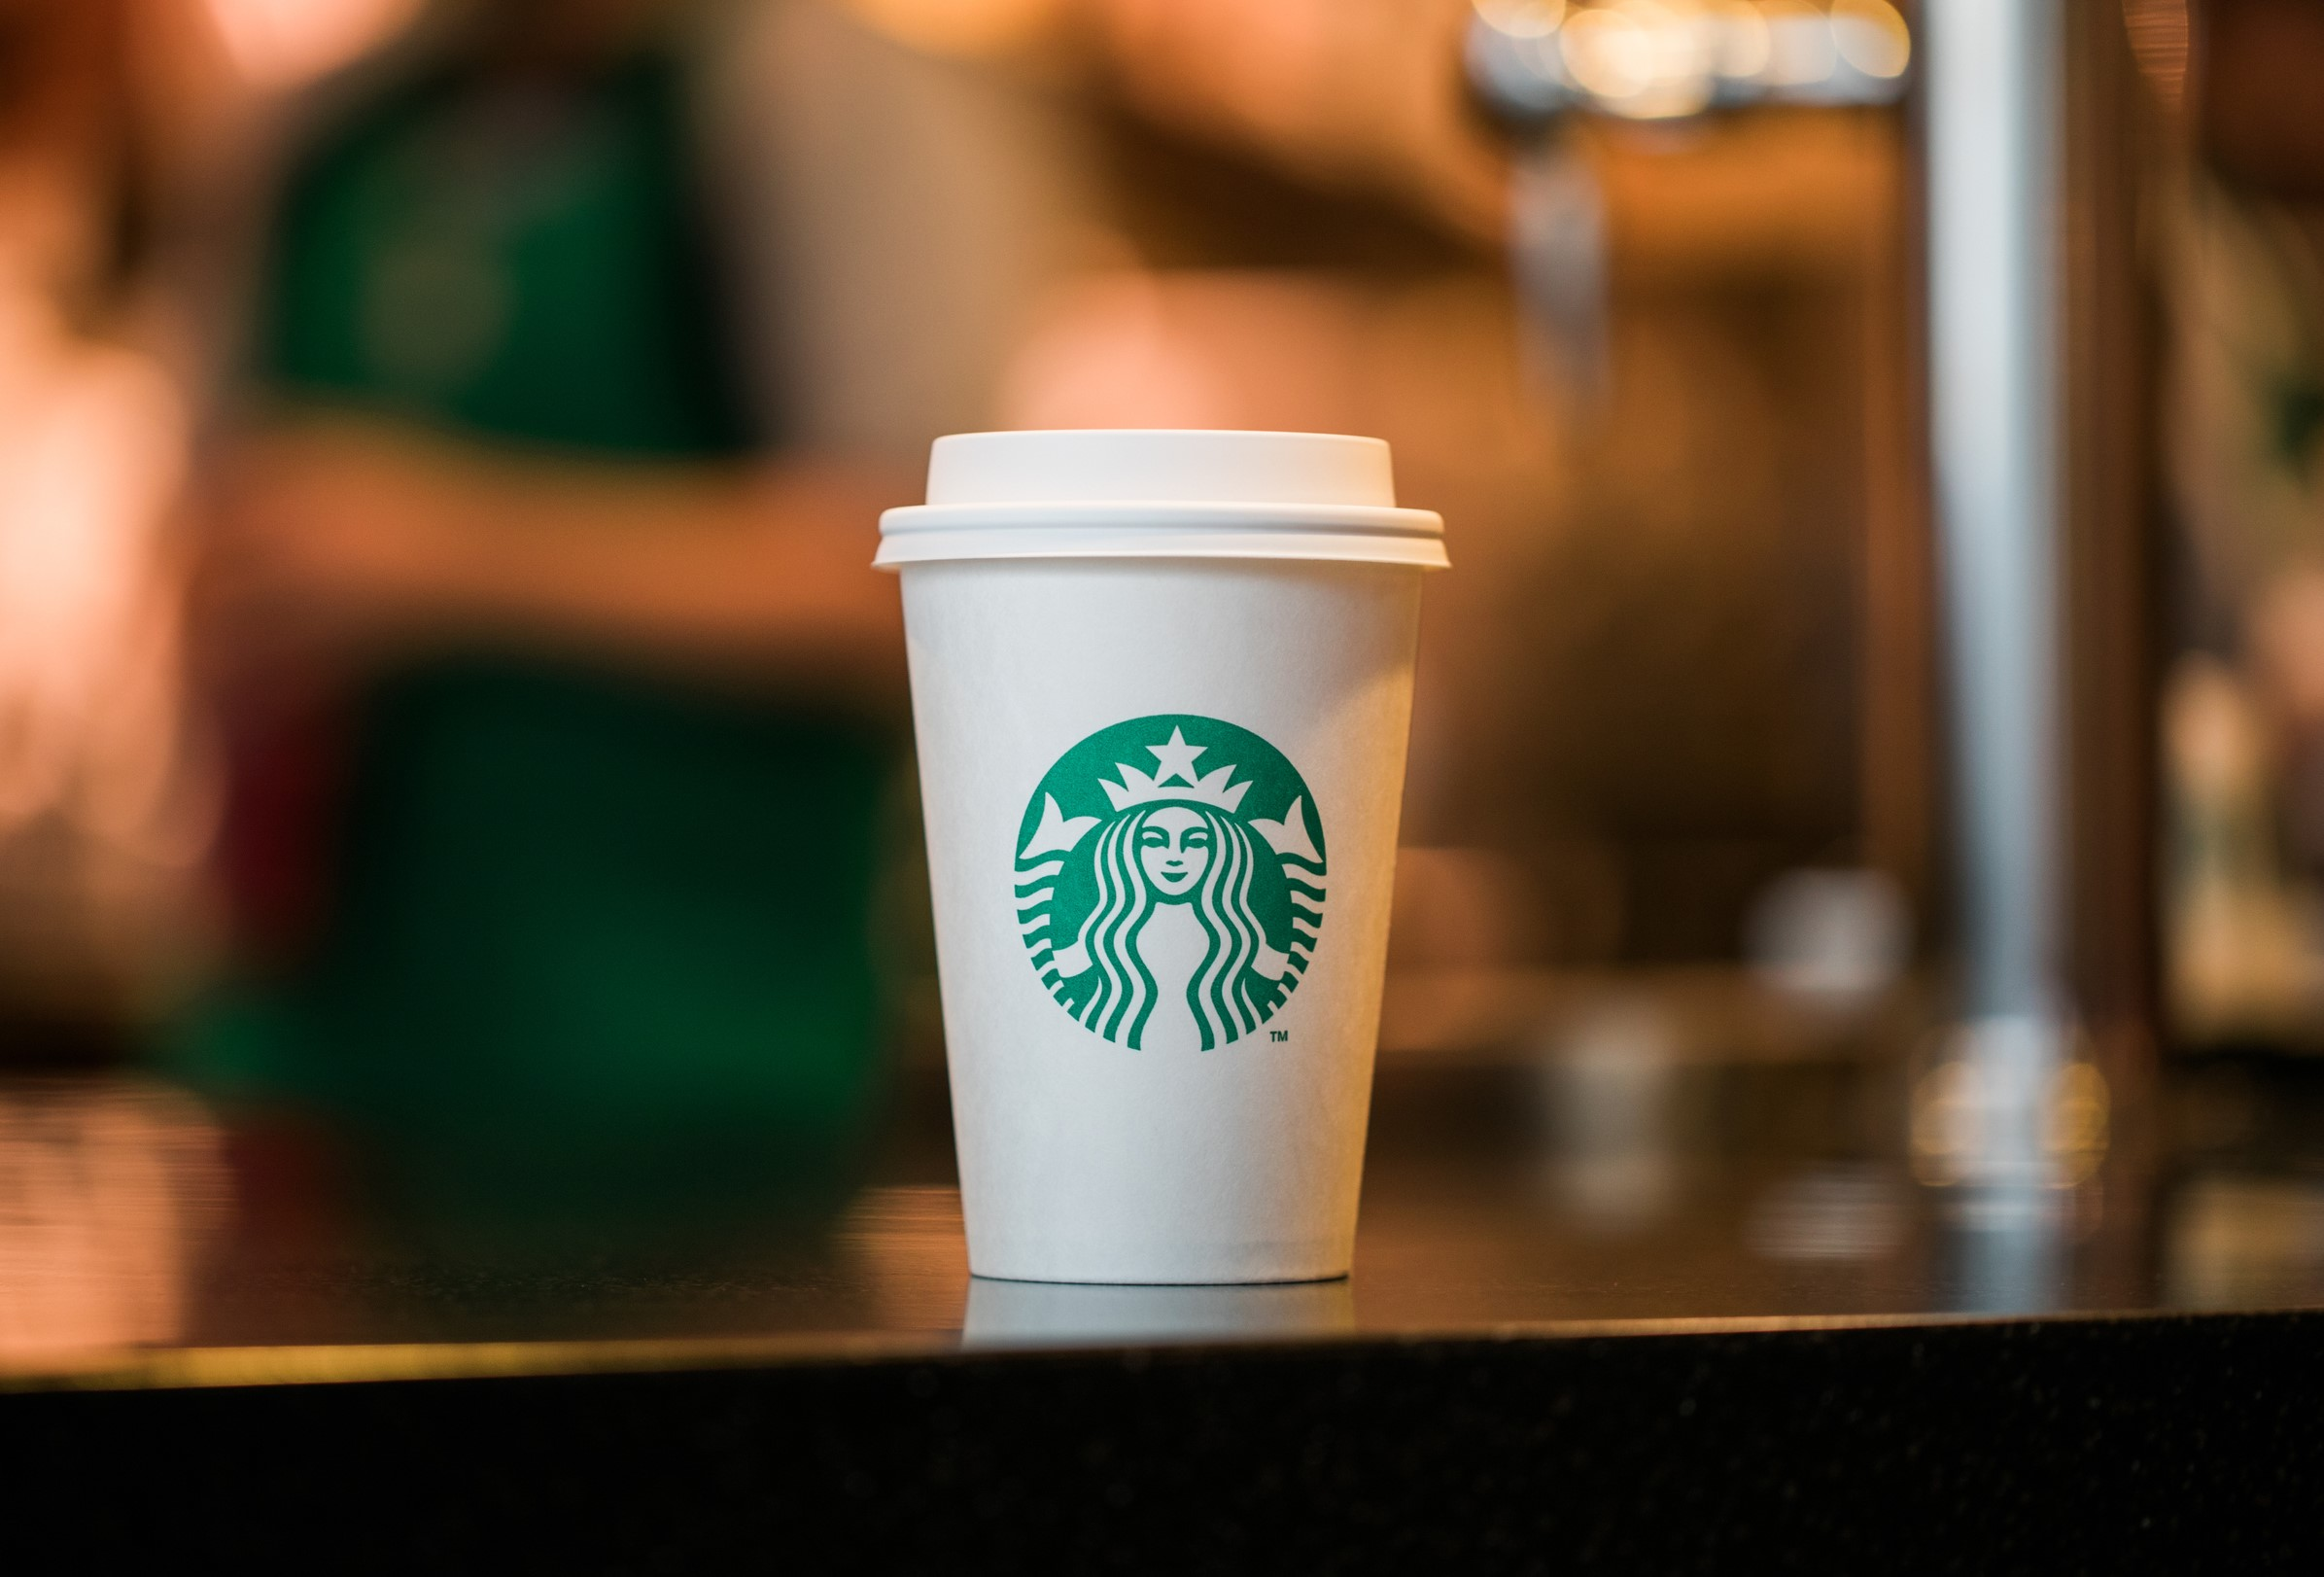 Starbucks pauses use of personal cups in coffee shops due to